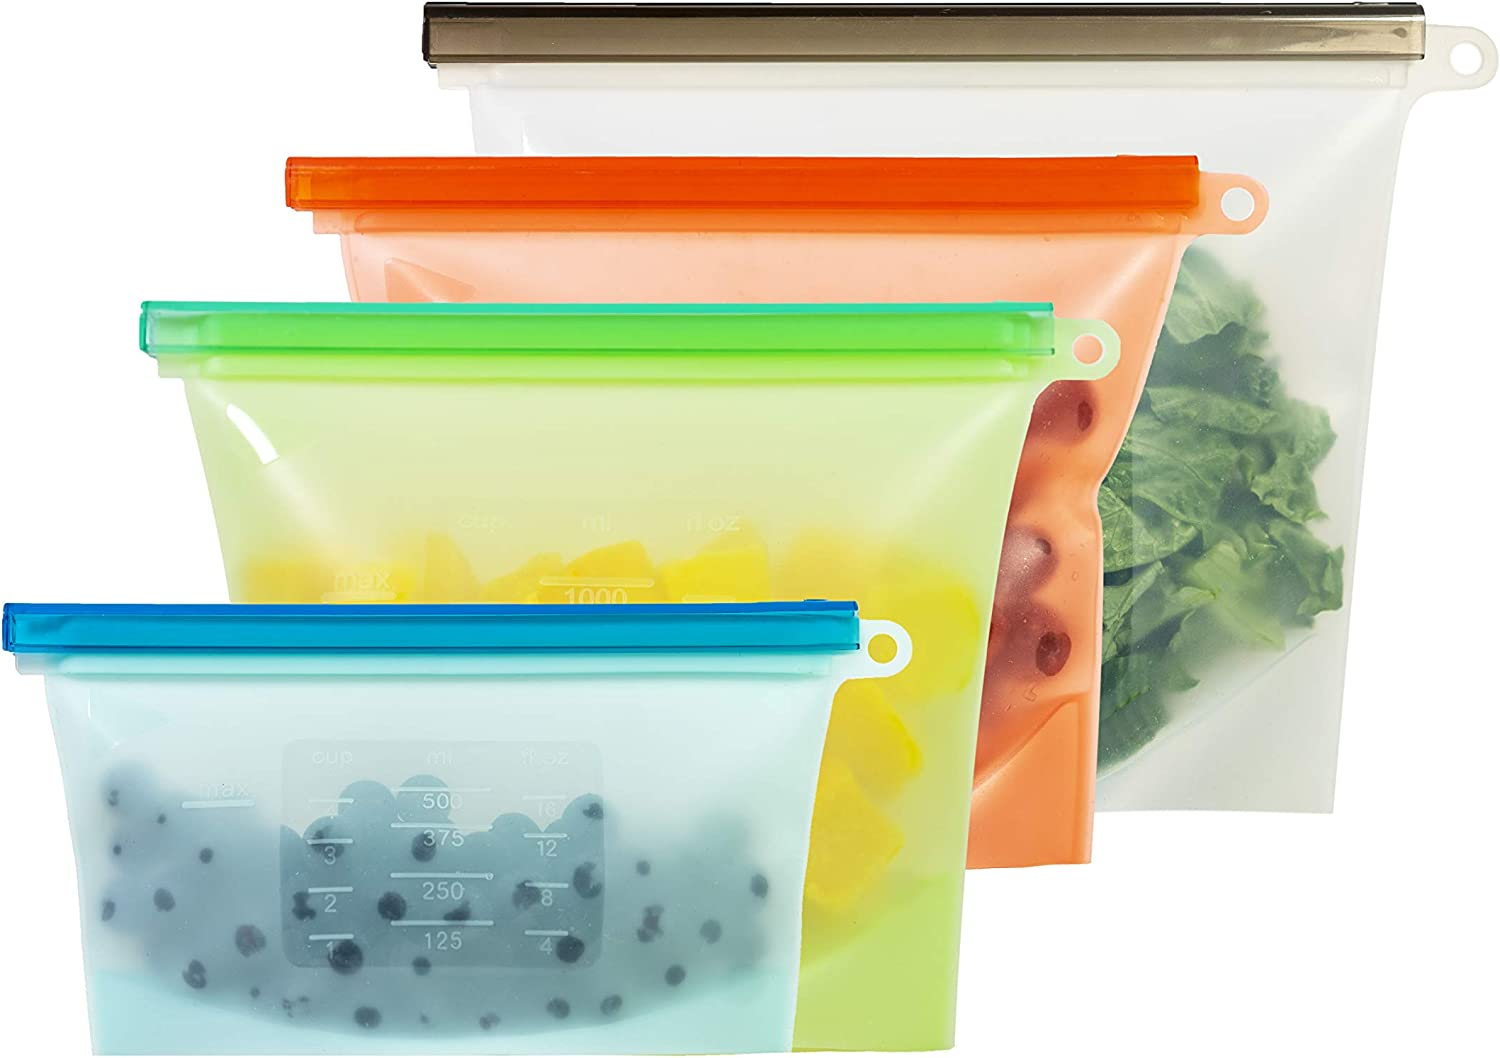 Silicone Storage Bags - Reusable Silicone Food Bag For Fruits, Snacks, Meats, Liquid | Eco Friendly, Airtight Seal, Dishwasher Safe Silicone Food Storage Bag for Cooking and Preservation (Pack of 4)